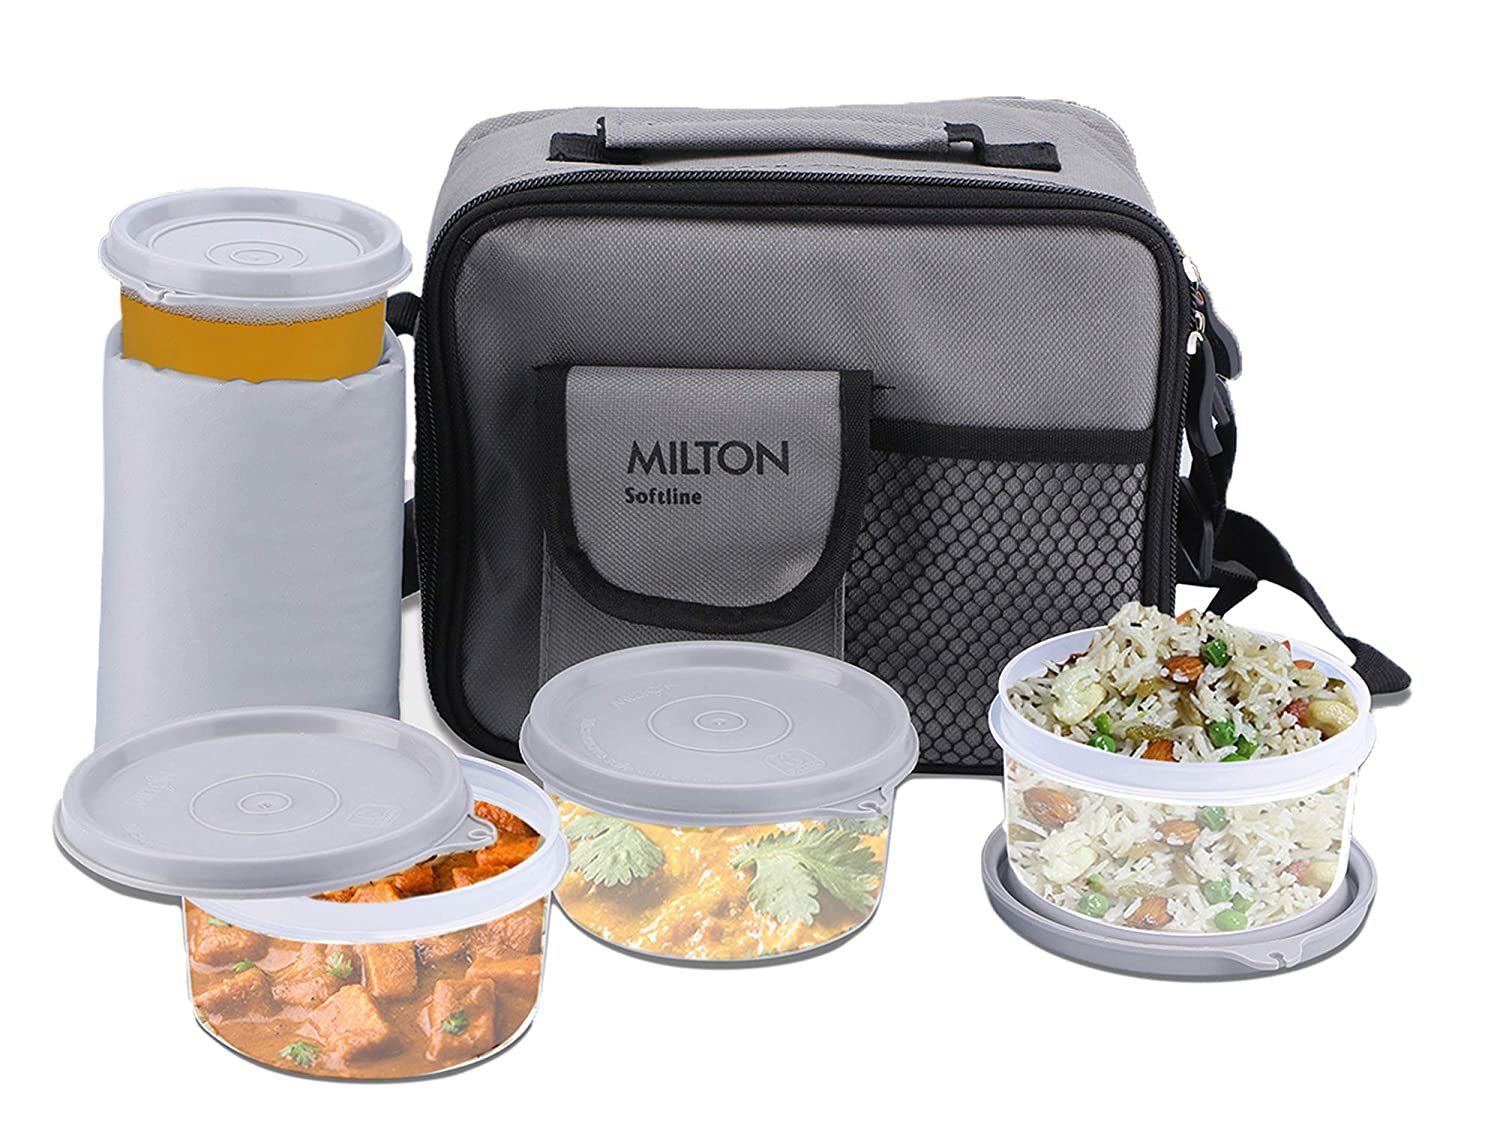 Milton Meal Combi Plastic Lunch Box